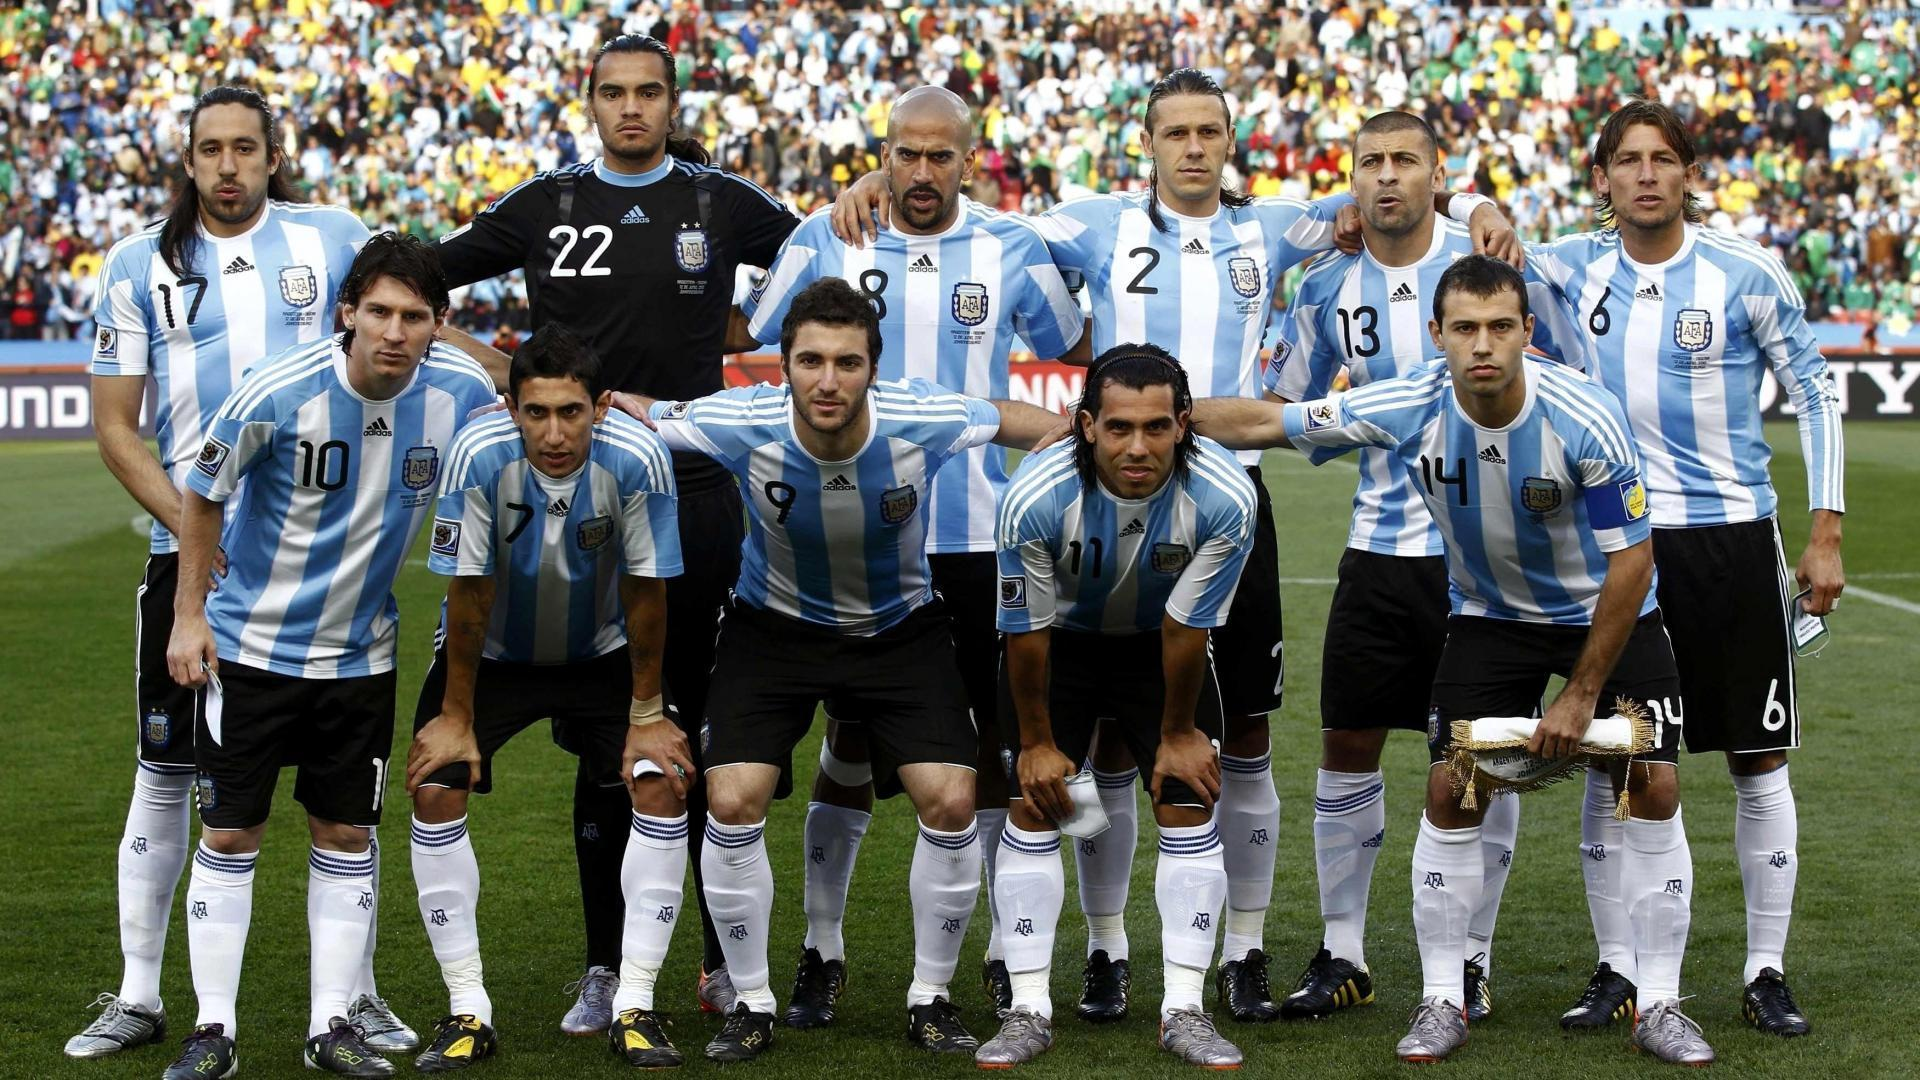 Argentina Football Images, Stock Photos Vectors Shutterstock Argentina football team group photo